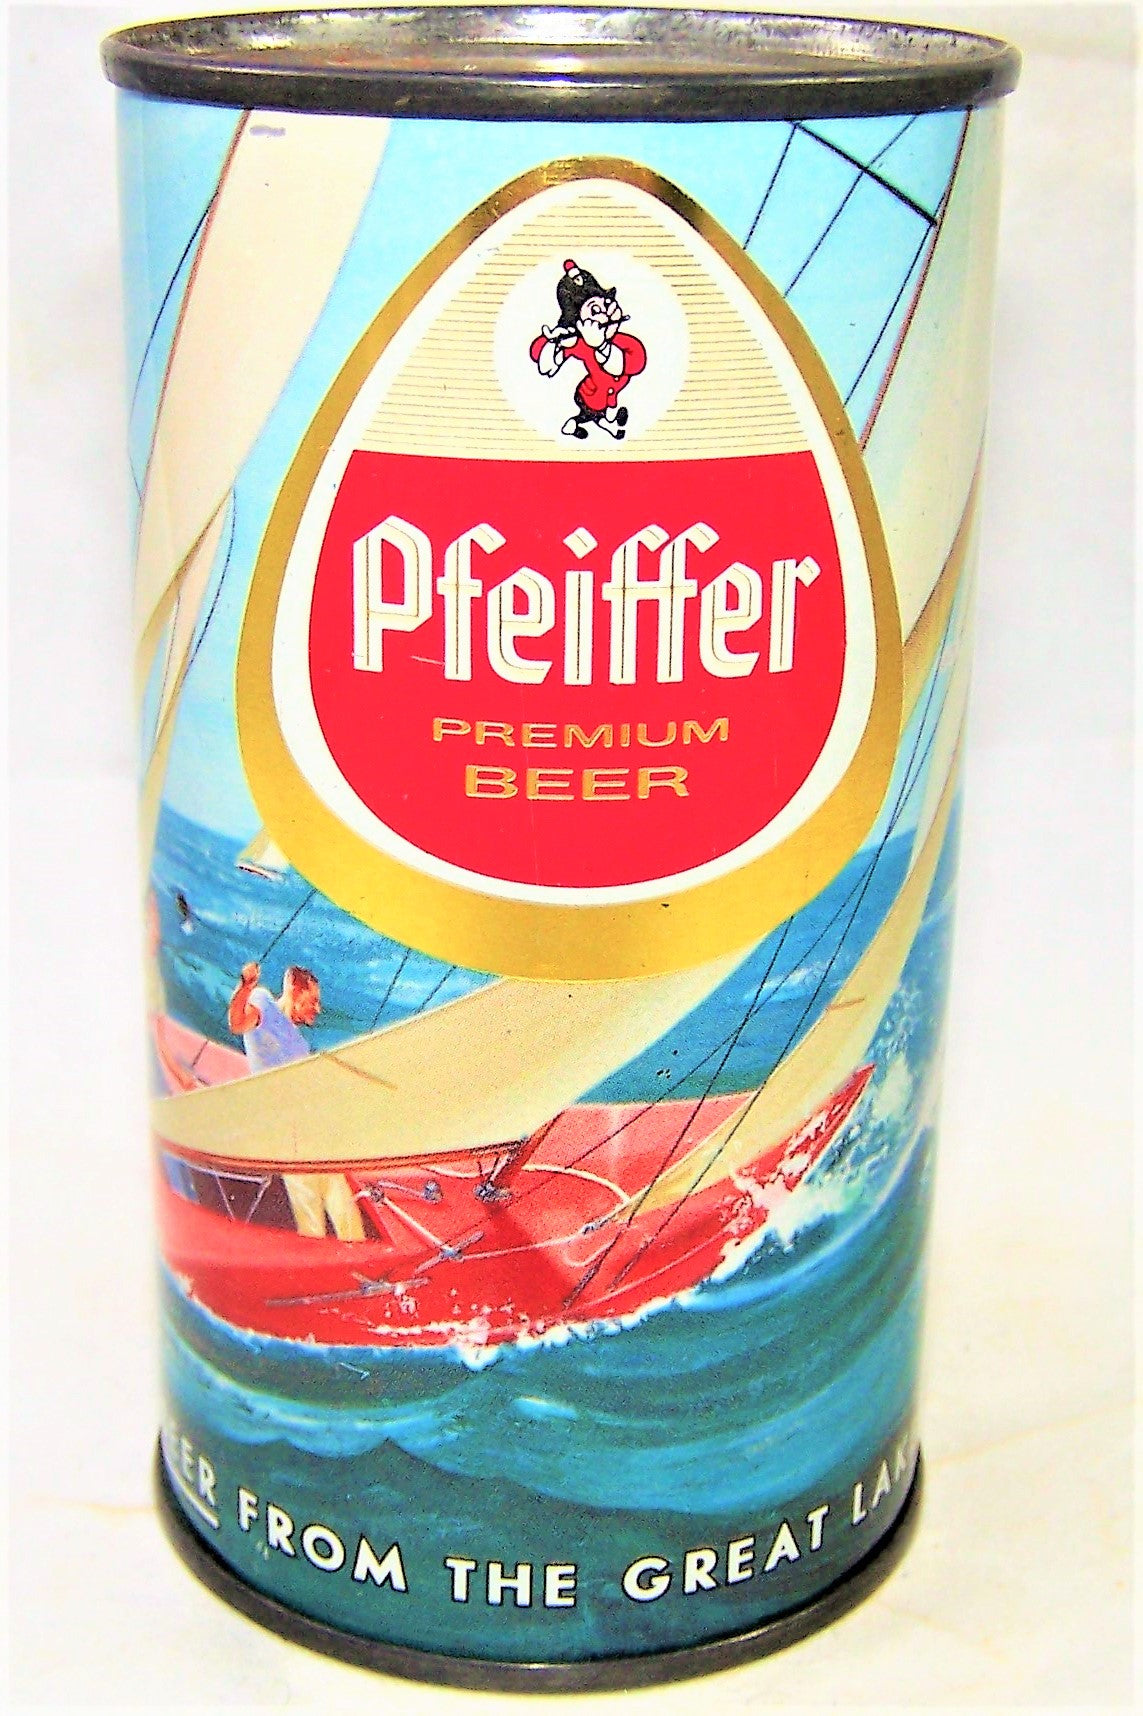 Pfeiffer Premium Beer (Metallic) USBC 114-08, Grade 1/1+ Sold on 02/22/19